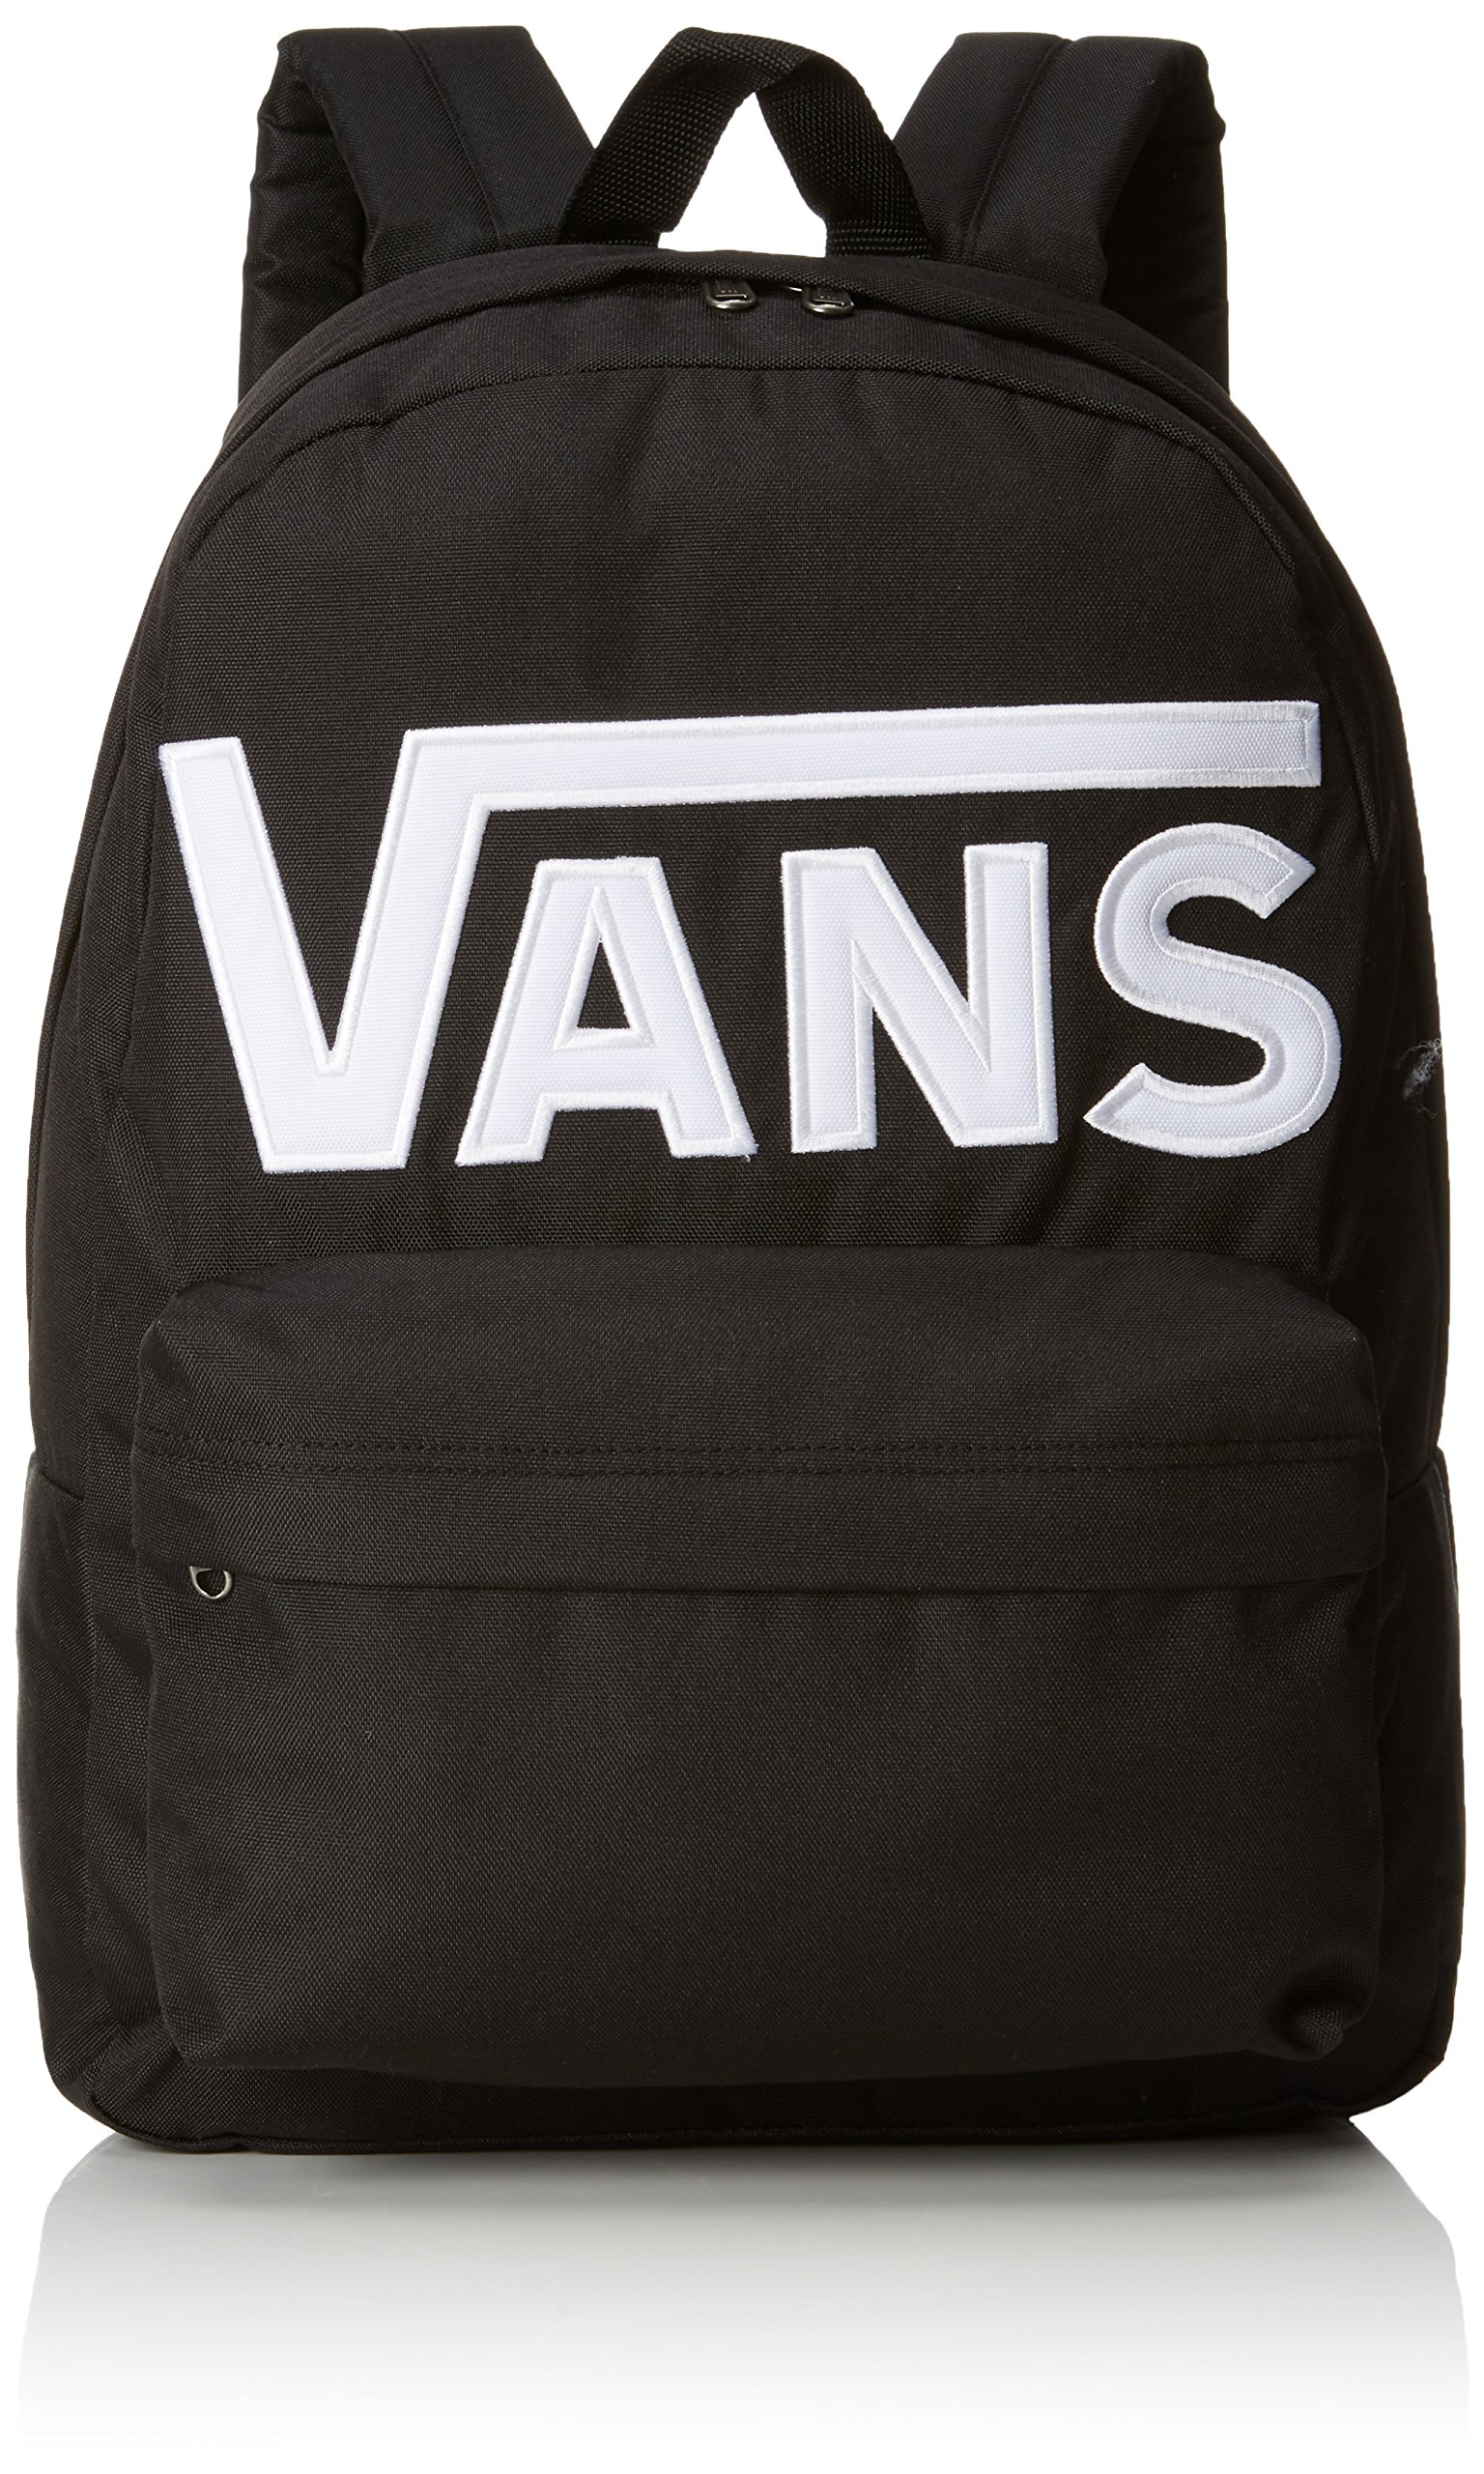 Vans Old SKOOL II Backpack Mochila Tipo Casual, 42 cm, 22 Liters, Negro